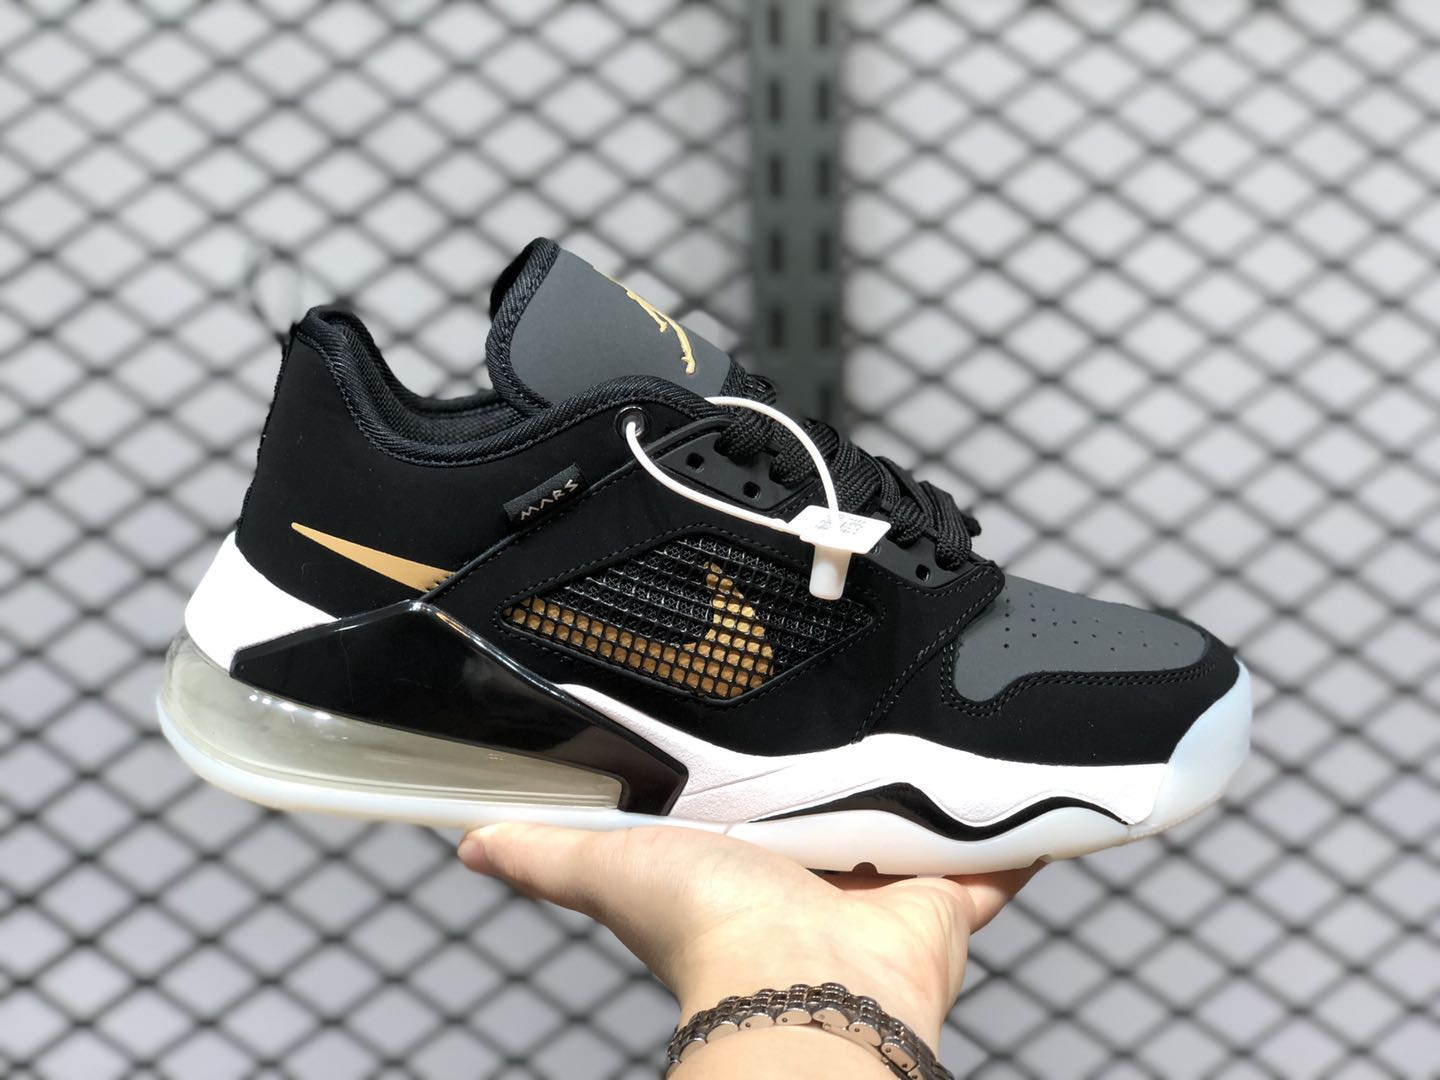 Jordan Mars 270 Low Black/Metallic Gold-Dark Smoke Grey-White-Pure Platinum